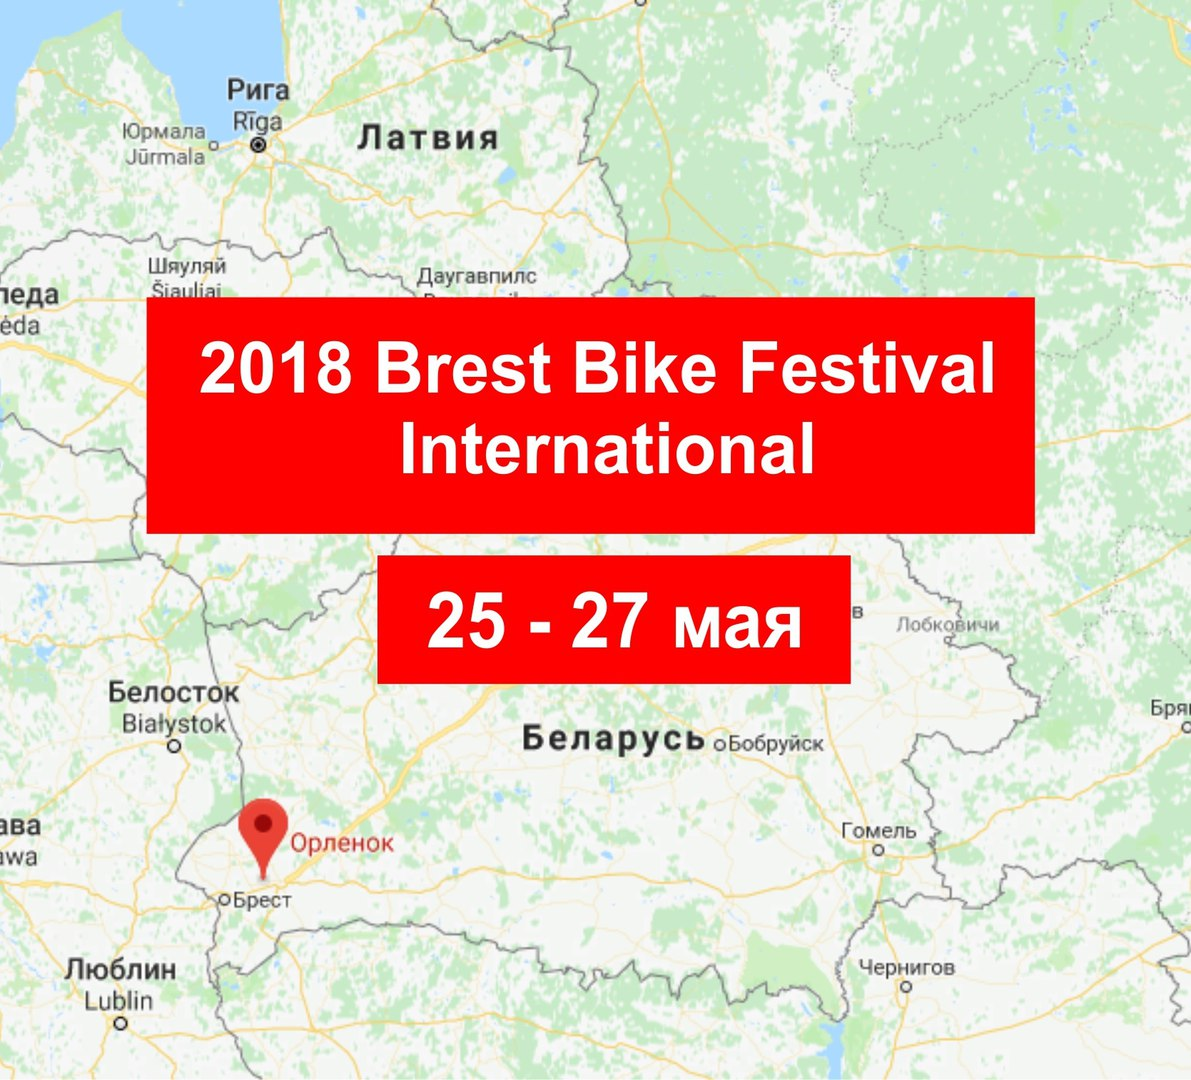 BREST BIKE FESTIVAL INTERNATIONAL